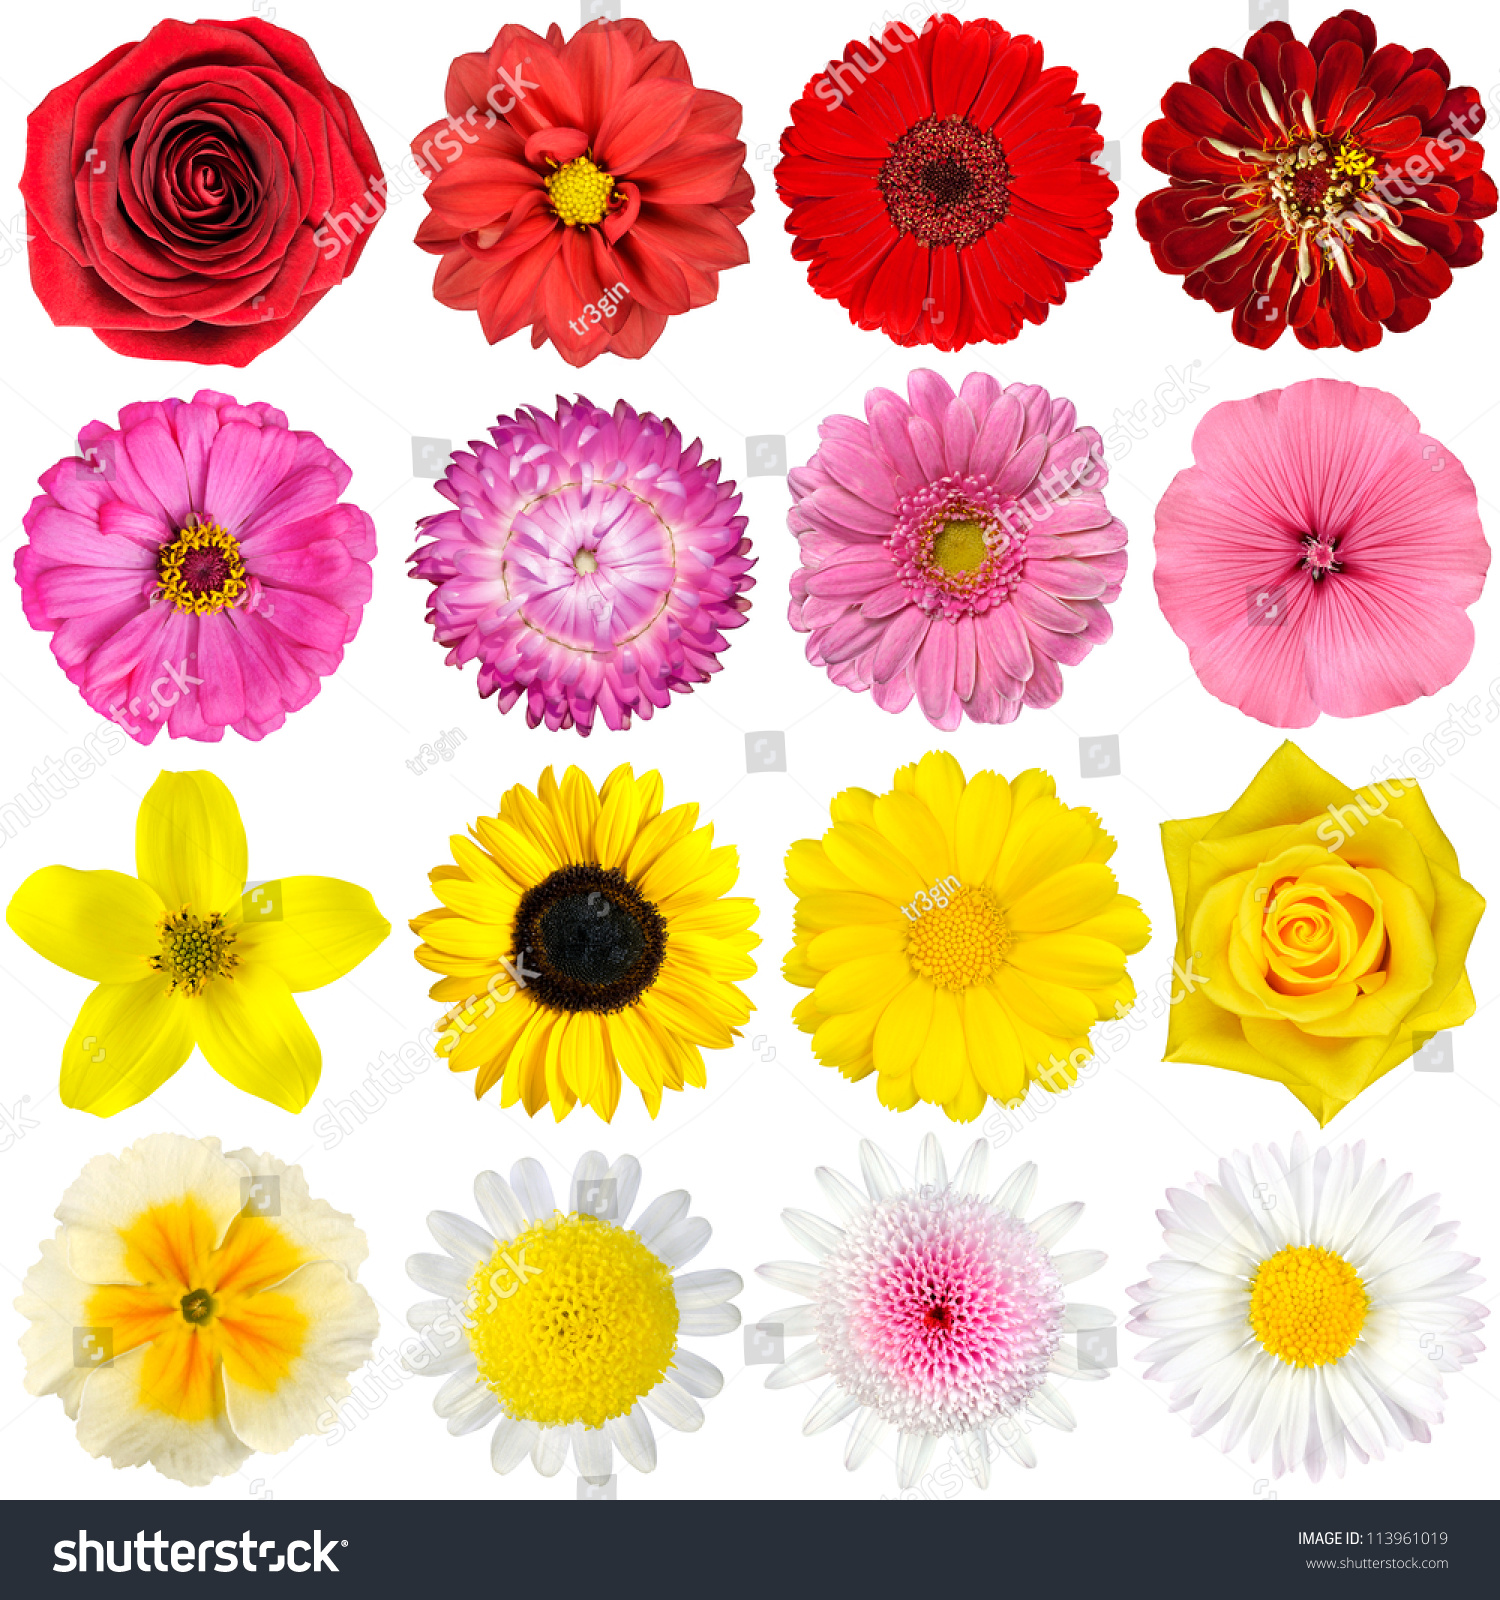 Similar images stock photos vectors of big selection various big selection of various flowers isolated on white background red pink yellow mightylinksfo